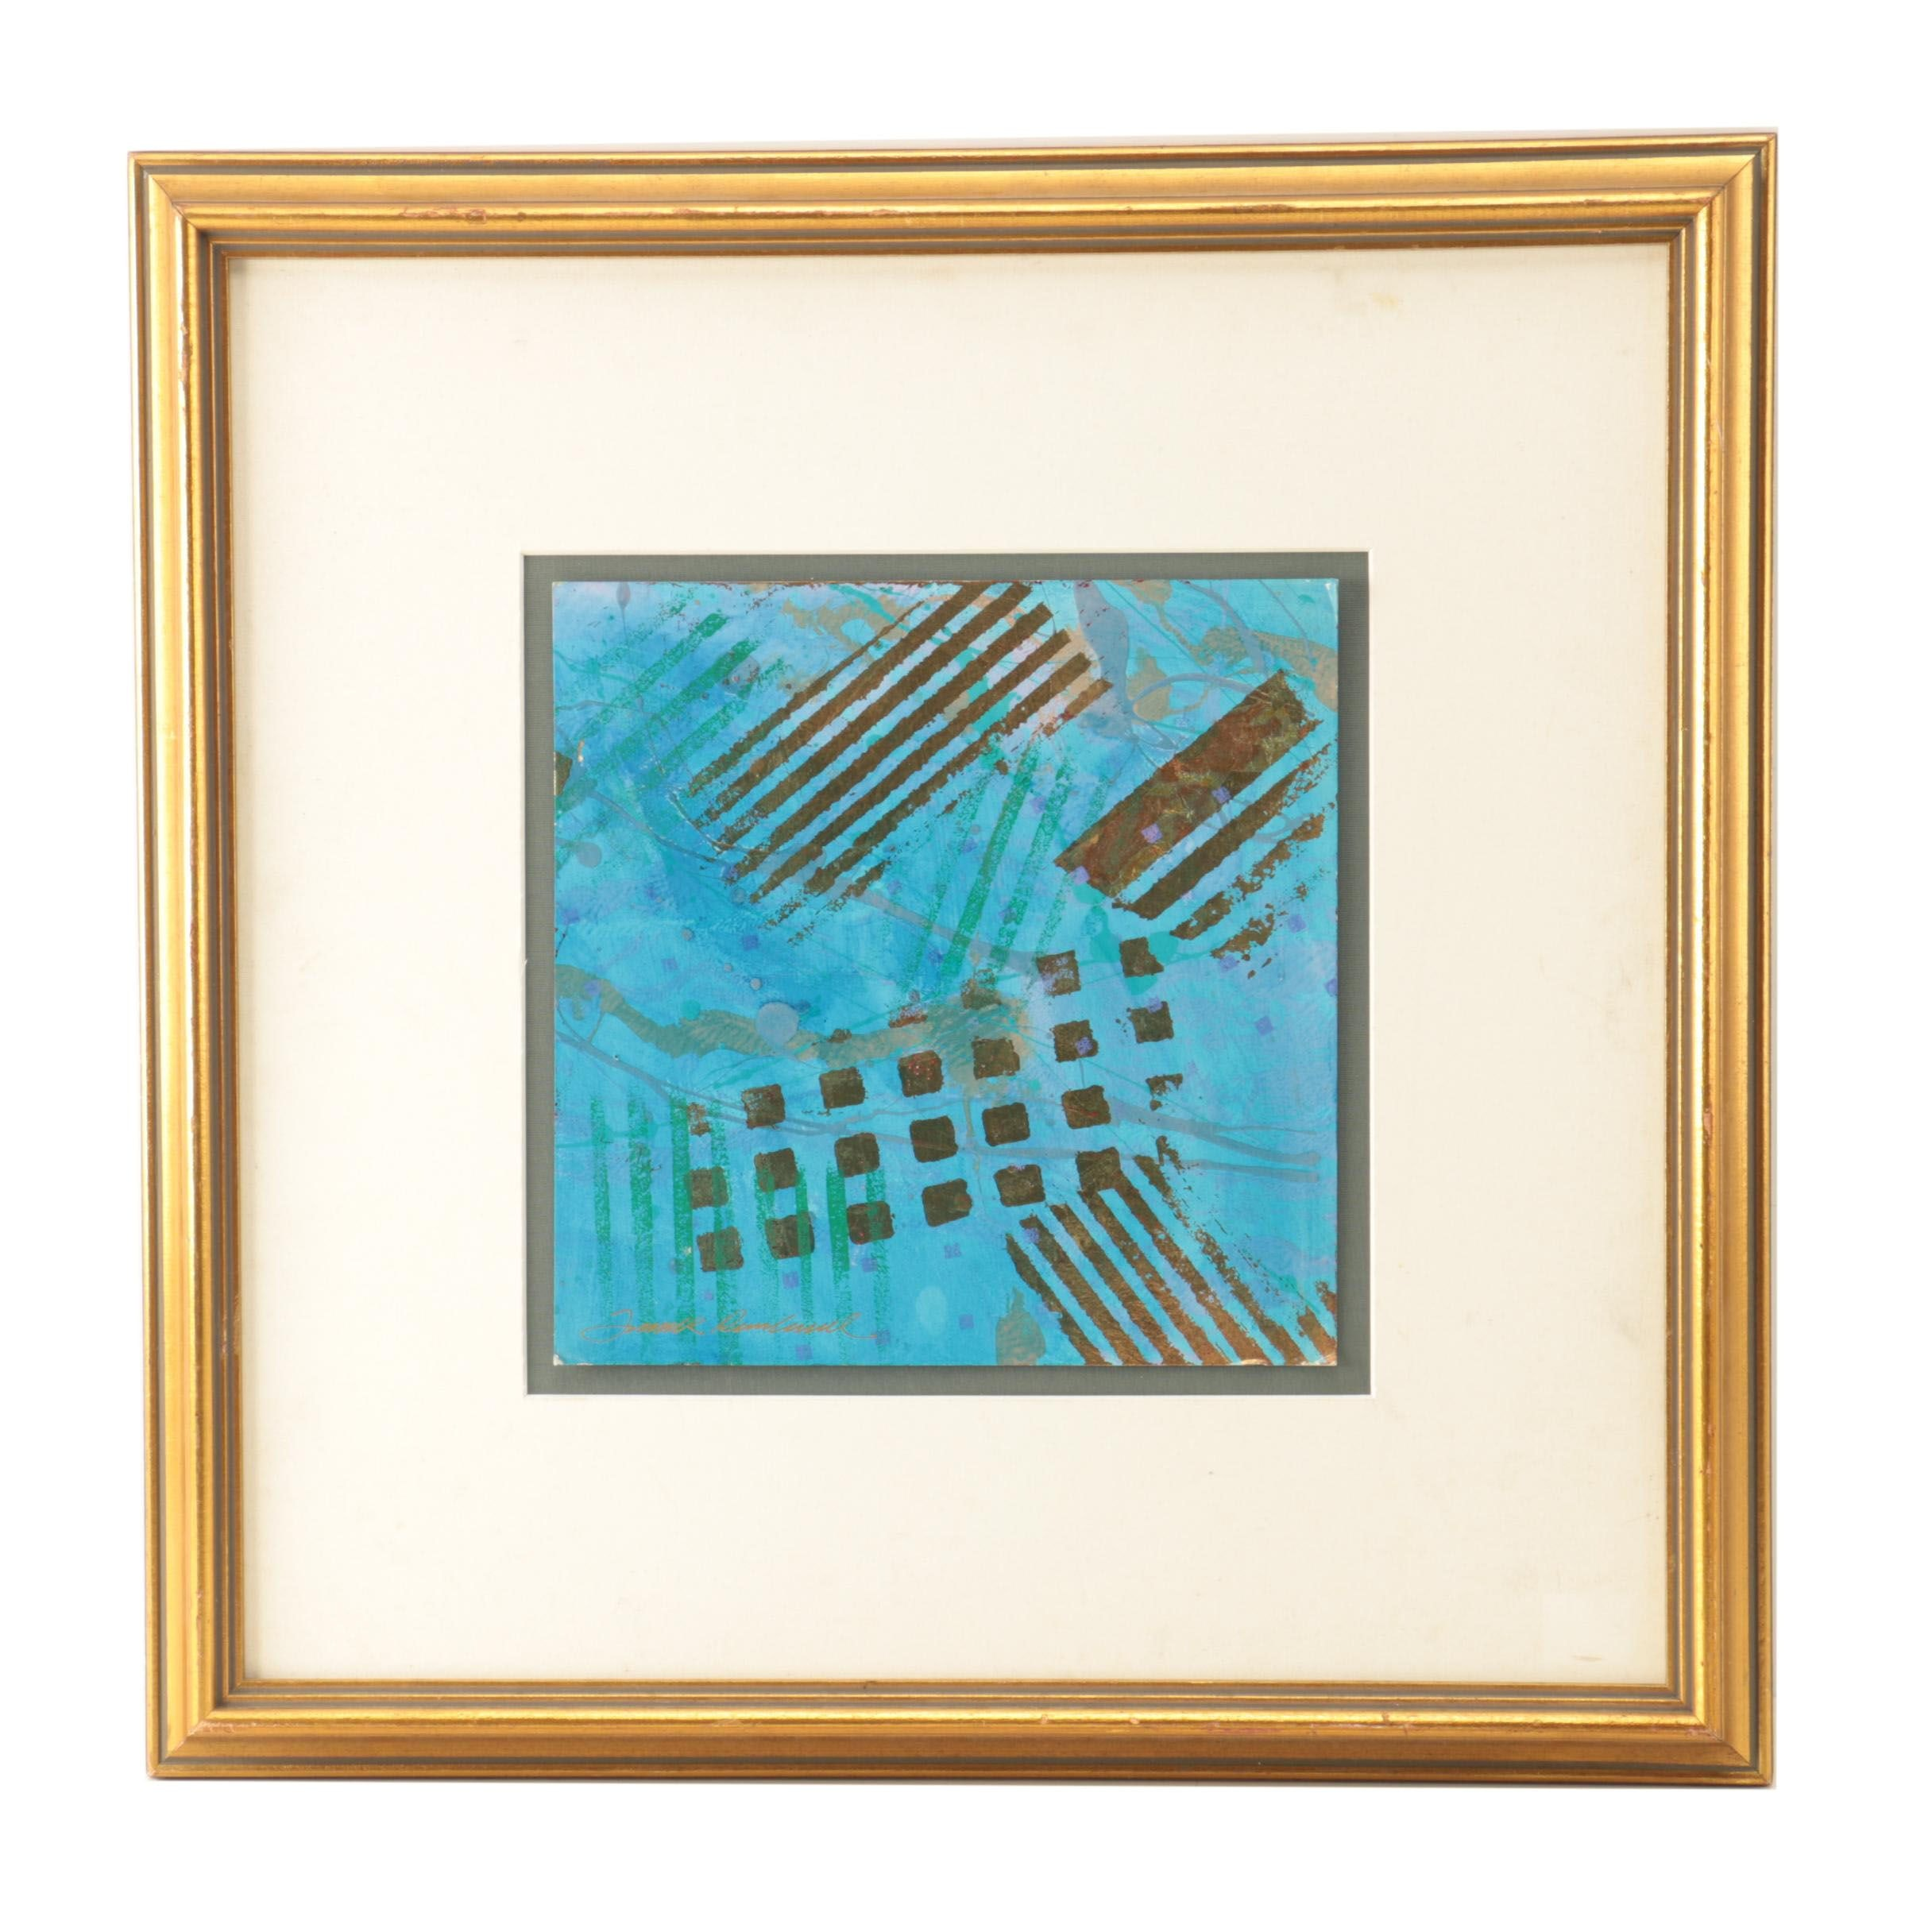 Frank Rowland Acrylic Painting on Board of Abstract Composition